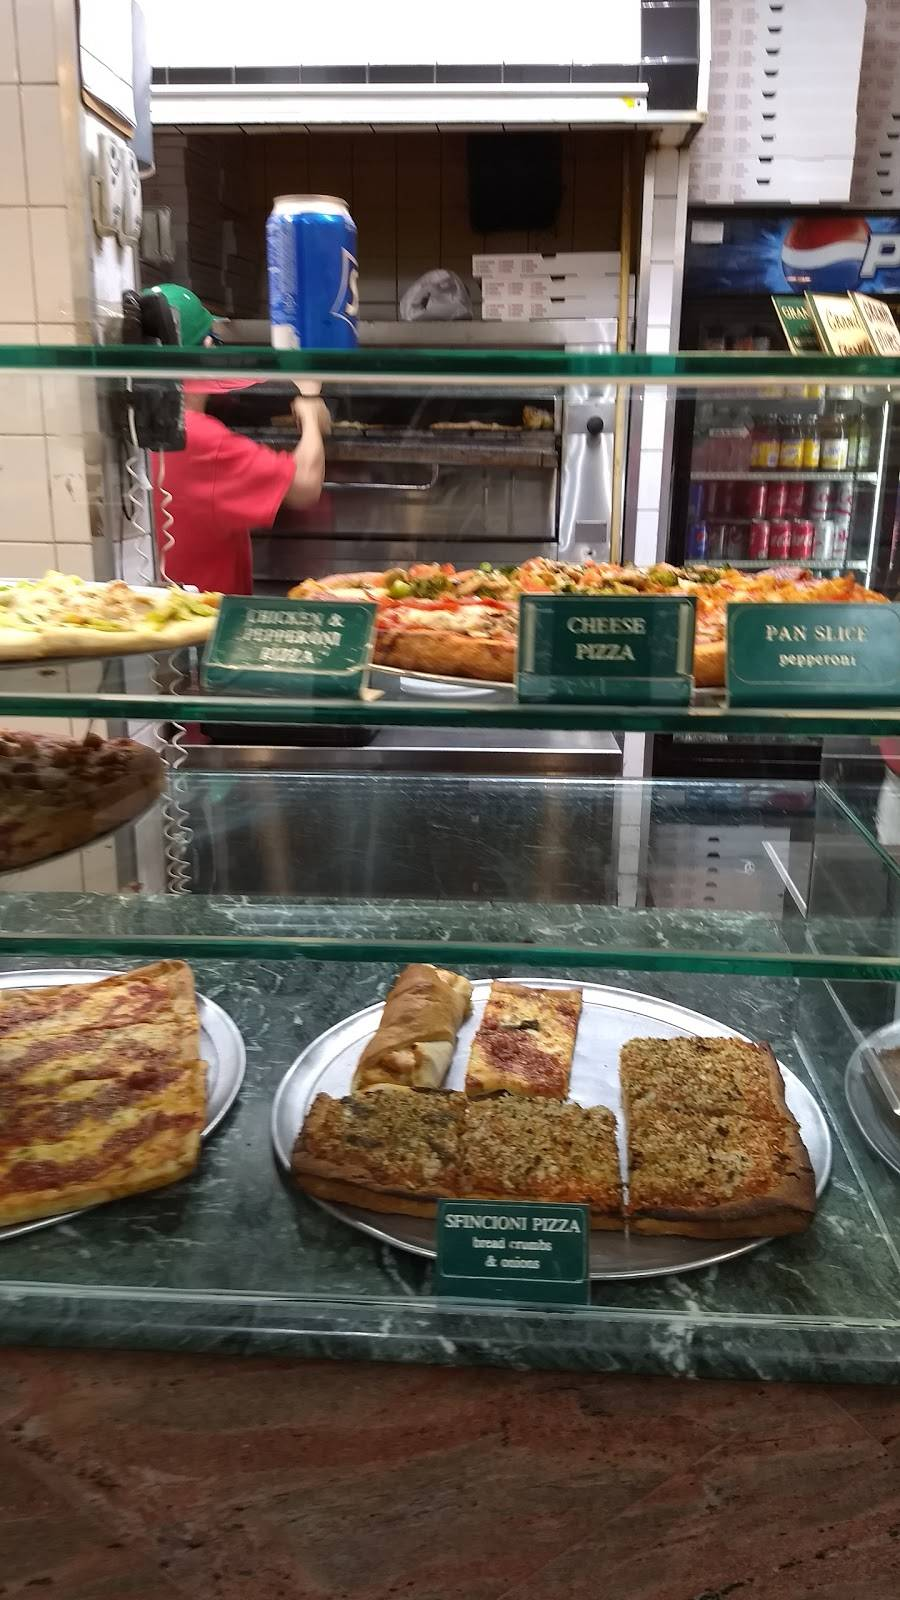 Corato I Pizza   meal delivery   66-94 Fresh Pond Rd, Ridgewood, NY 11385, USA   7184976177 OR +1 718-497-6177